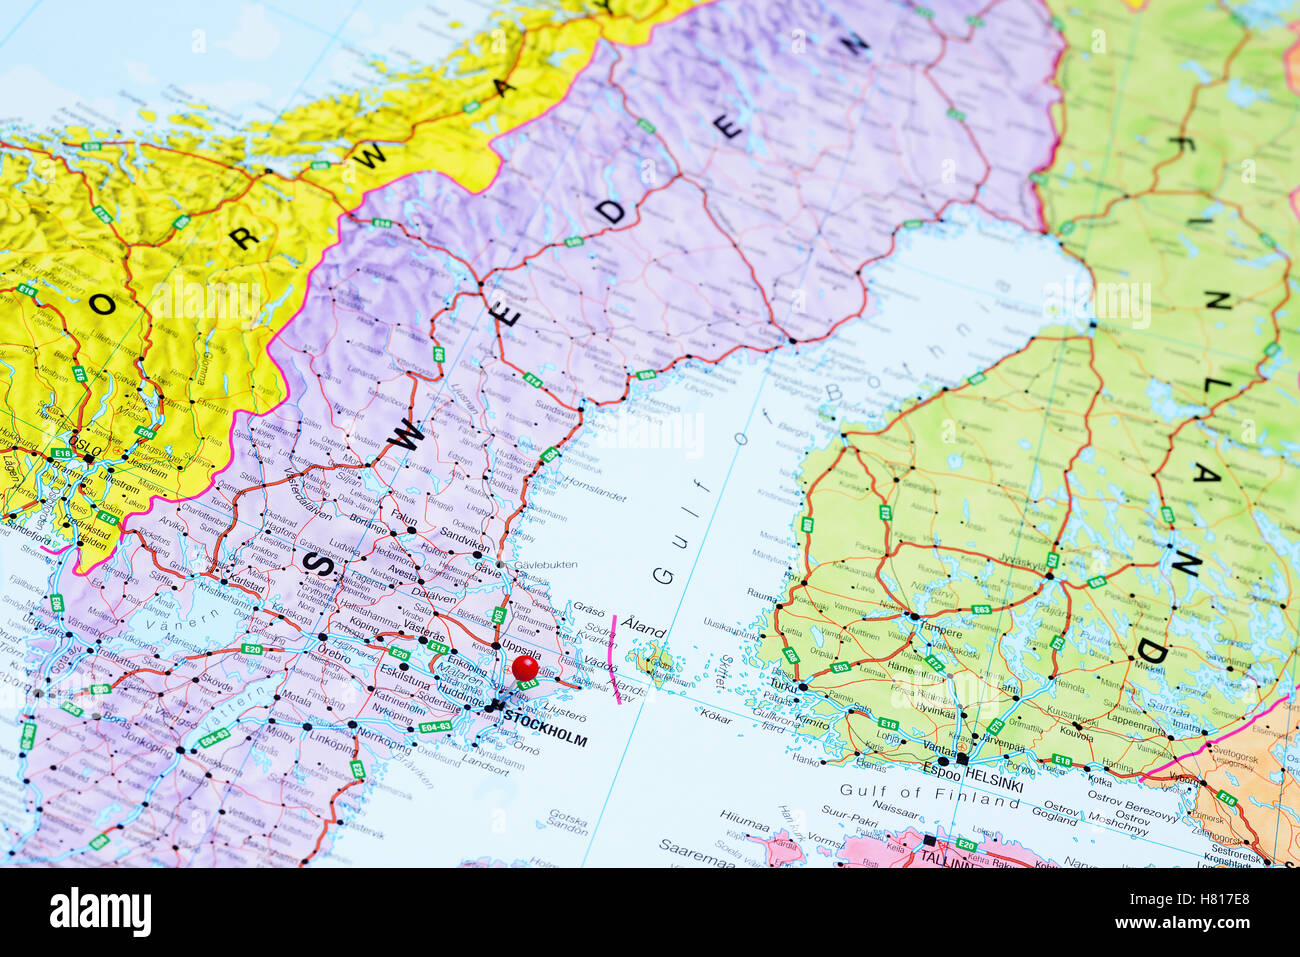 Stockholm pinned on a map of Sweden Stock Photo Royalty Free Image